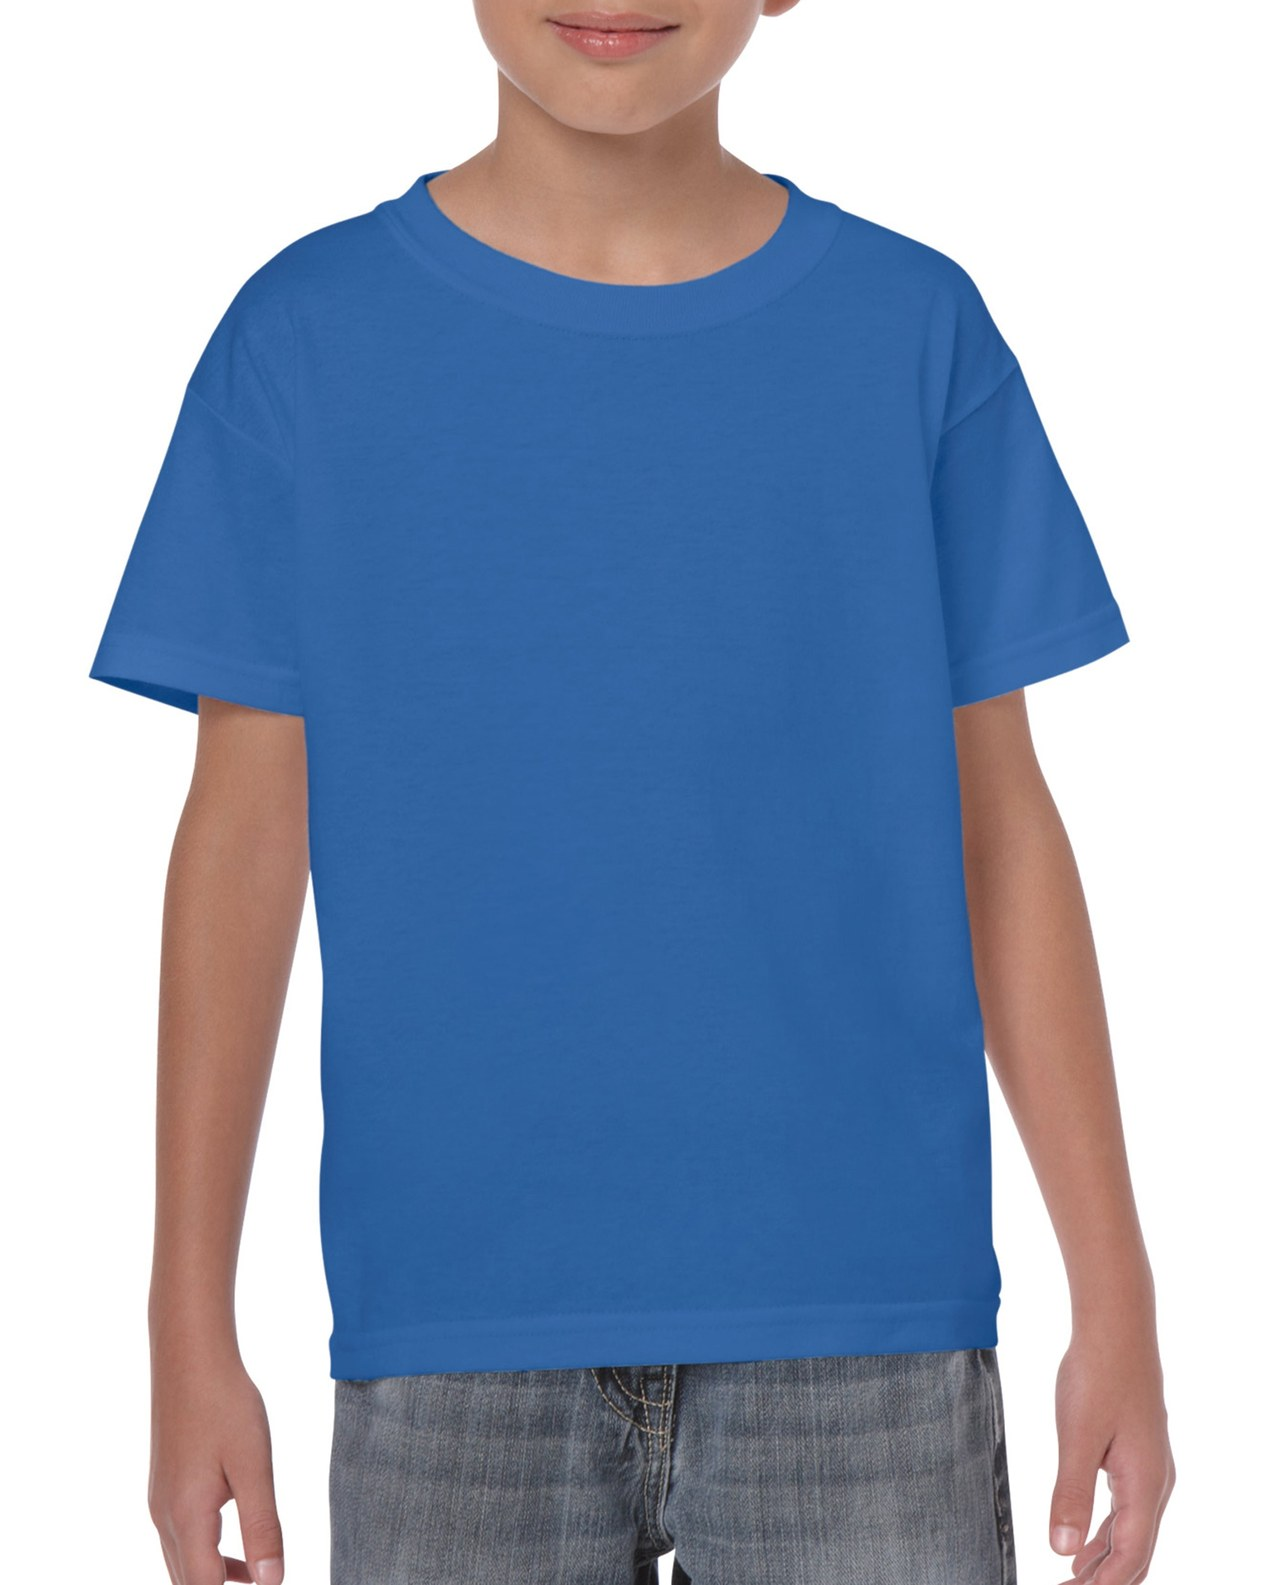 f505193cf0 5000B | Gildan® Heavy Cotton™ | 5.3 oz/yd² | Youth T-Shirt | Gildan